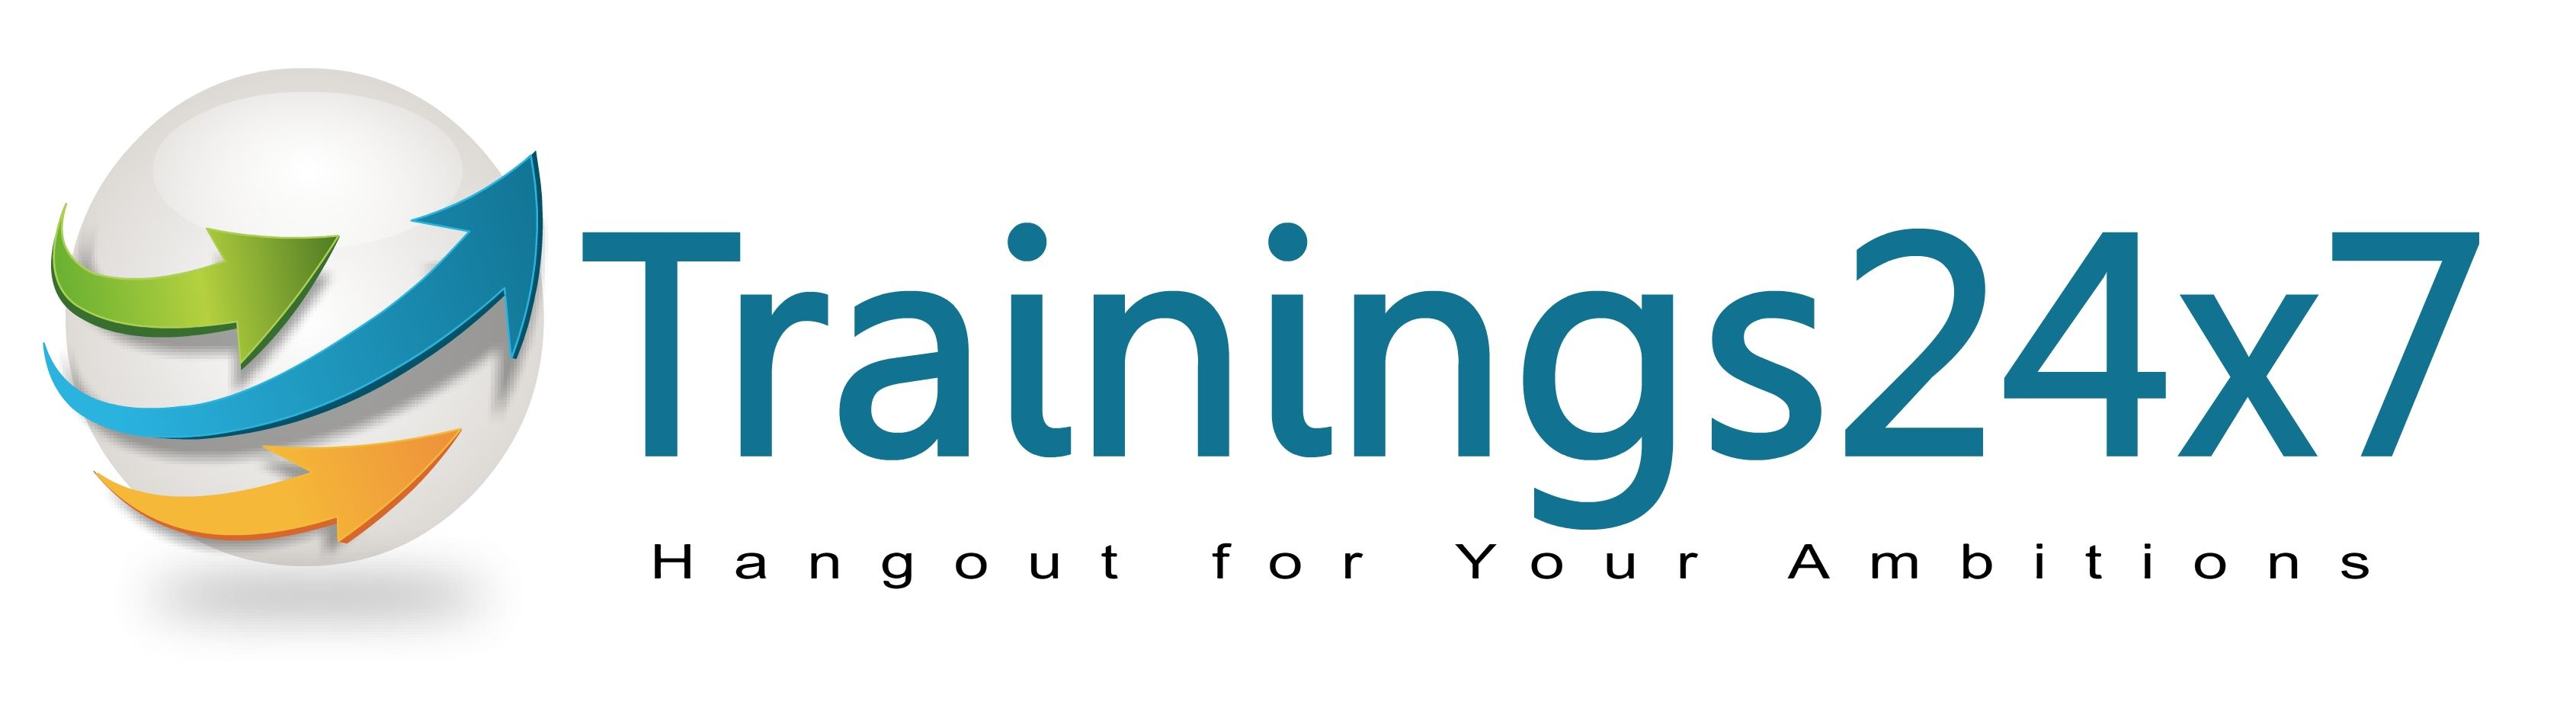 Trainings24x7 is organizing 40 hours vmware vcp 55 certification trainings24x7 is organizing 40 hours vmware vcp 55 certification training in delhi this hands 1betcityfo Images